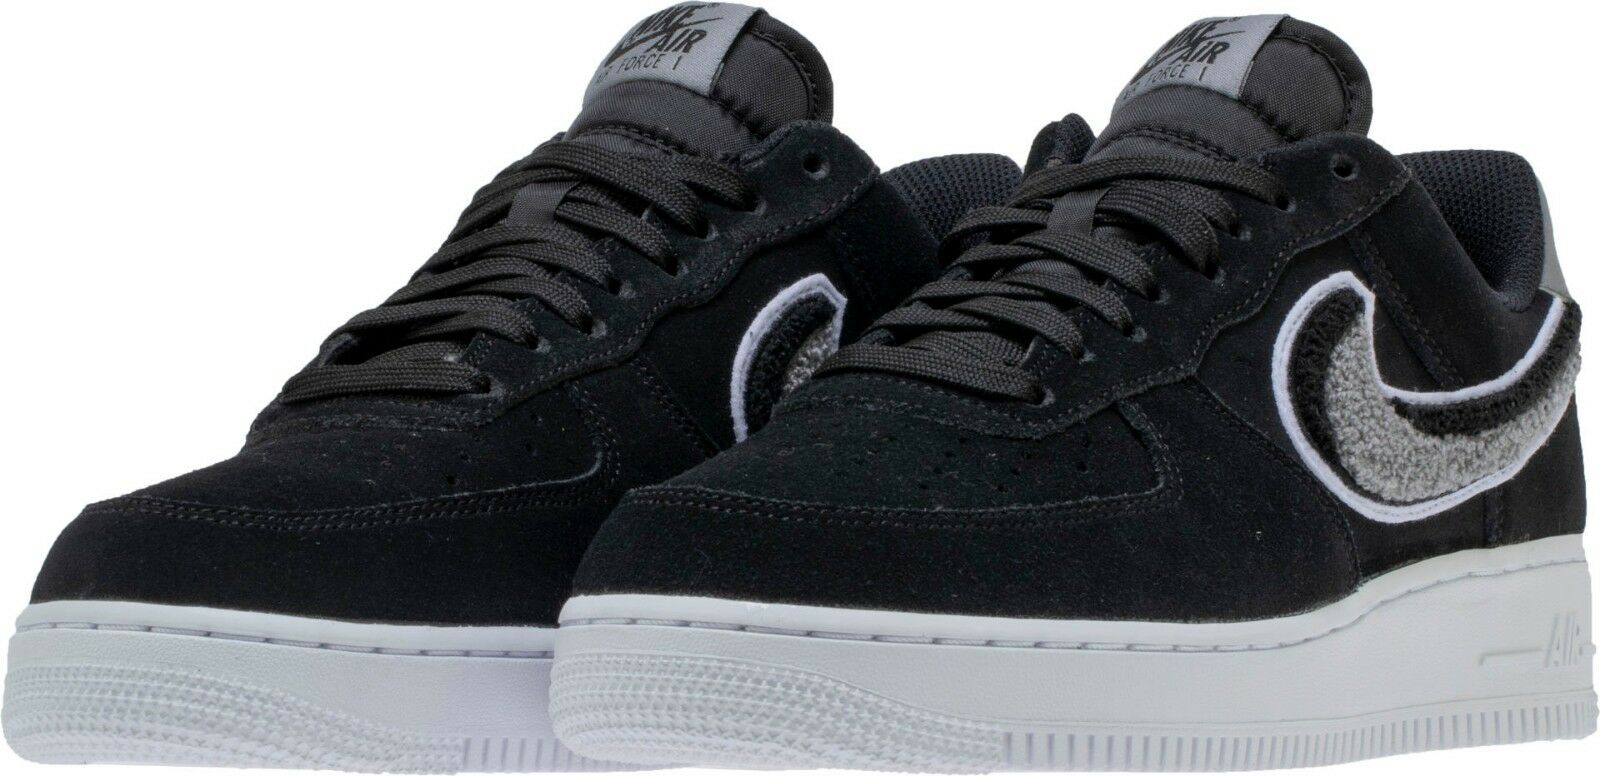 The most popular shoes for men and women Men's Nike Air Force 1 '07 Low LV8 Lifestyle Black/Grey Sz 8-12 NIB 823511-014